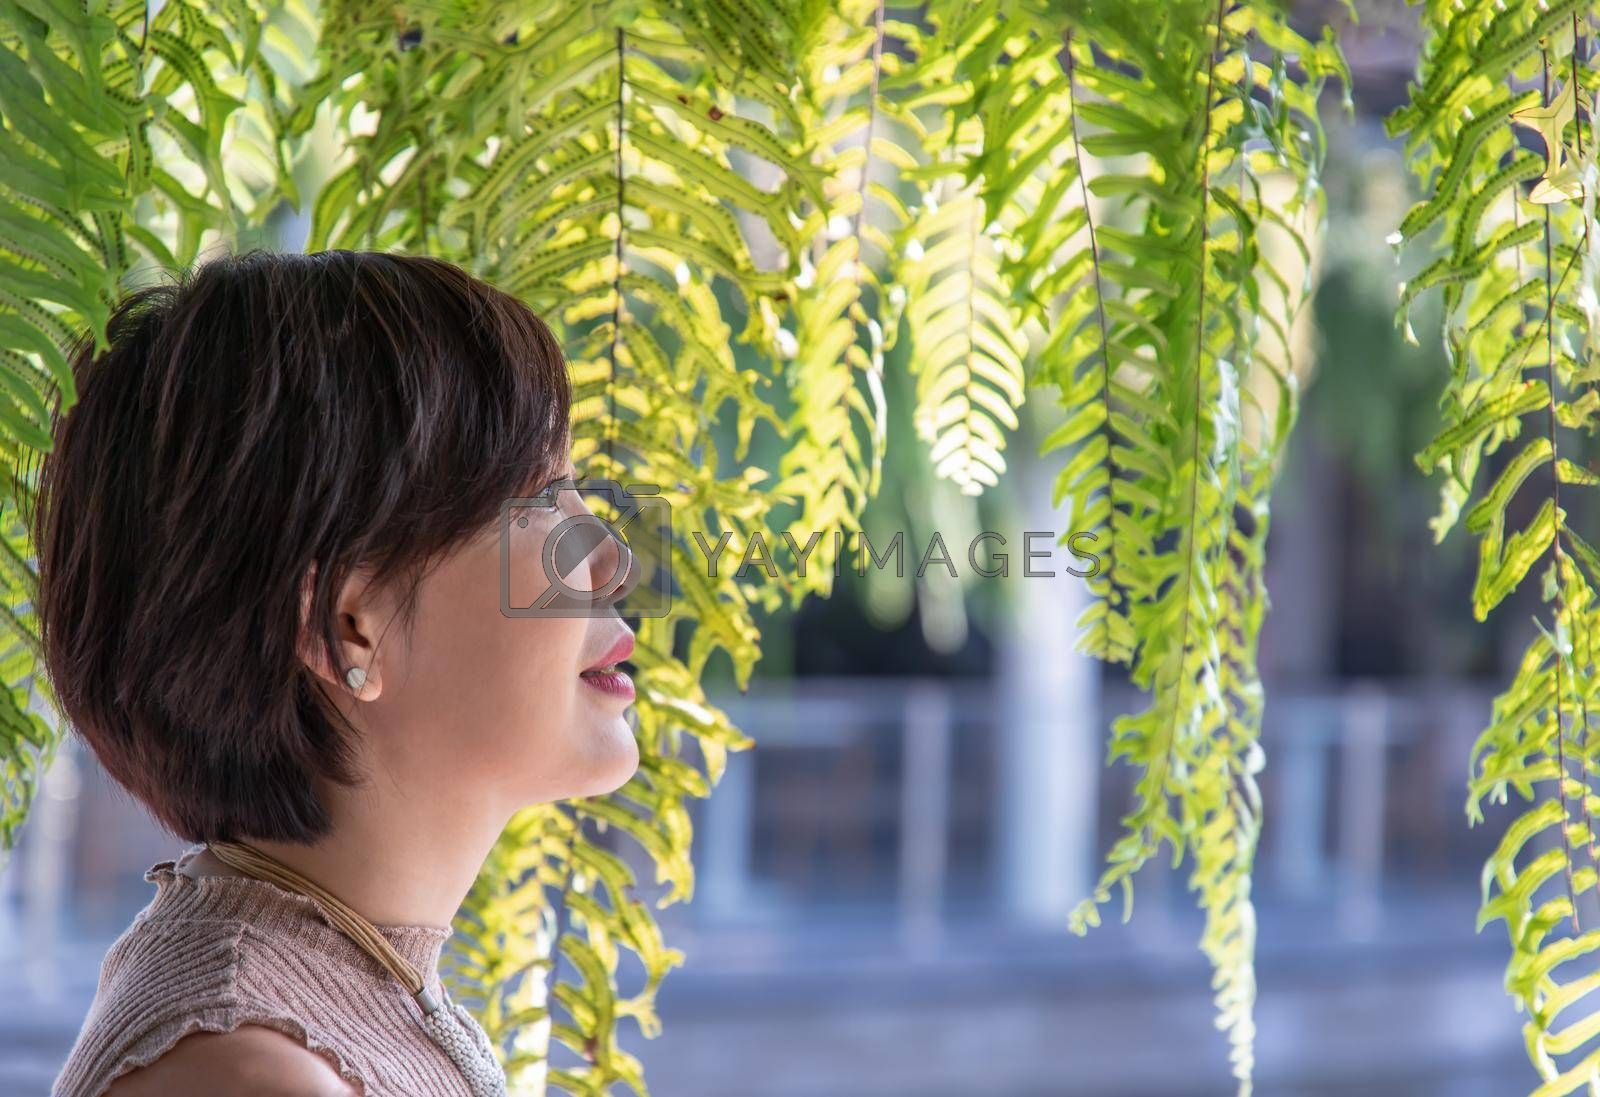 Portrait of a young Asian woman enjoy and relax on green ferns leaves background. Side view, Happy woman in nature concept, Selective focus.